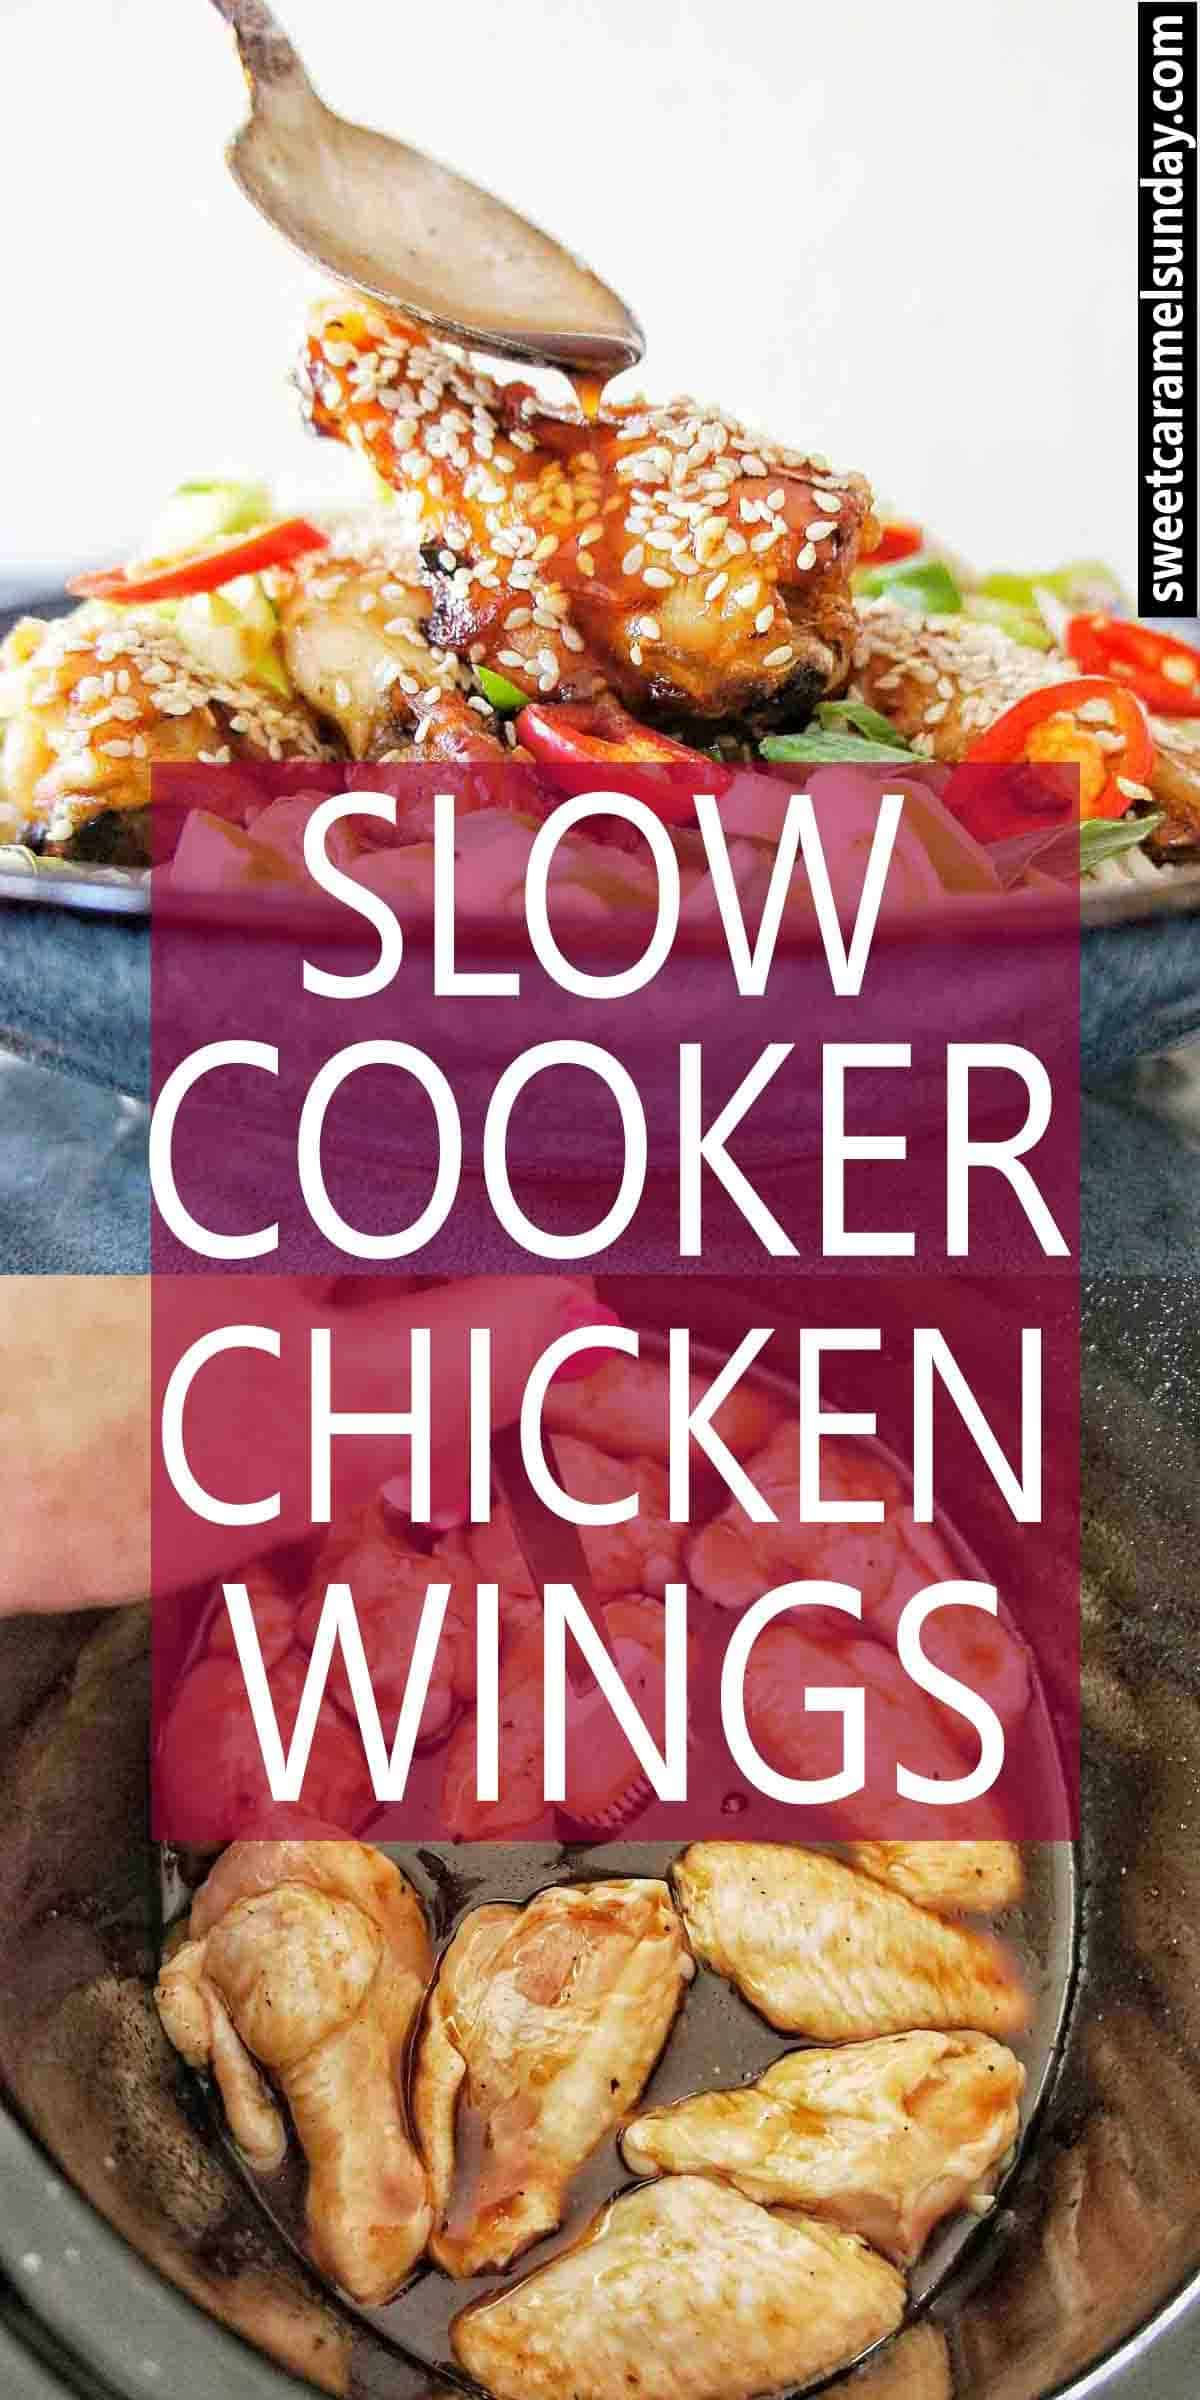 Slow Cooker Sticky Chicken Wings with text overlay